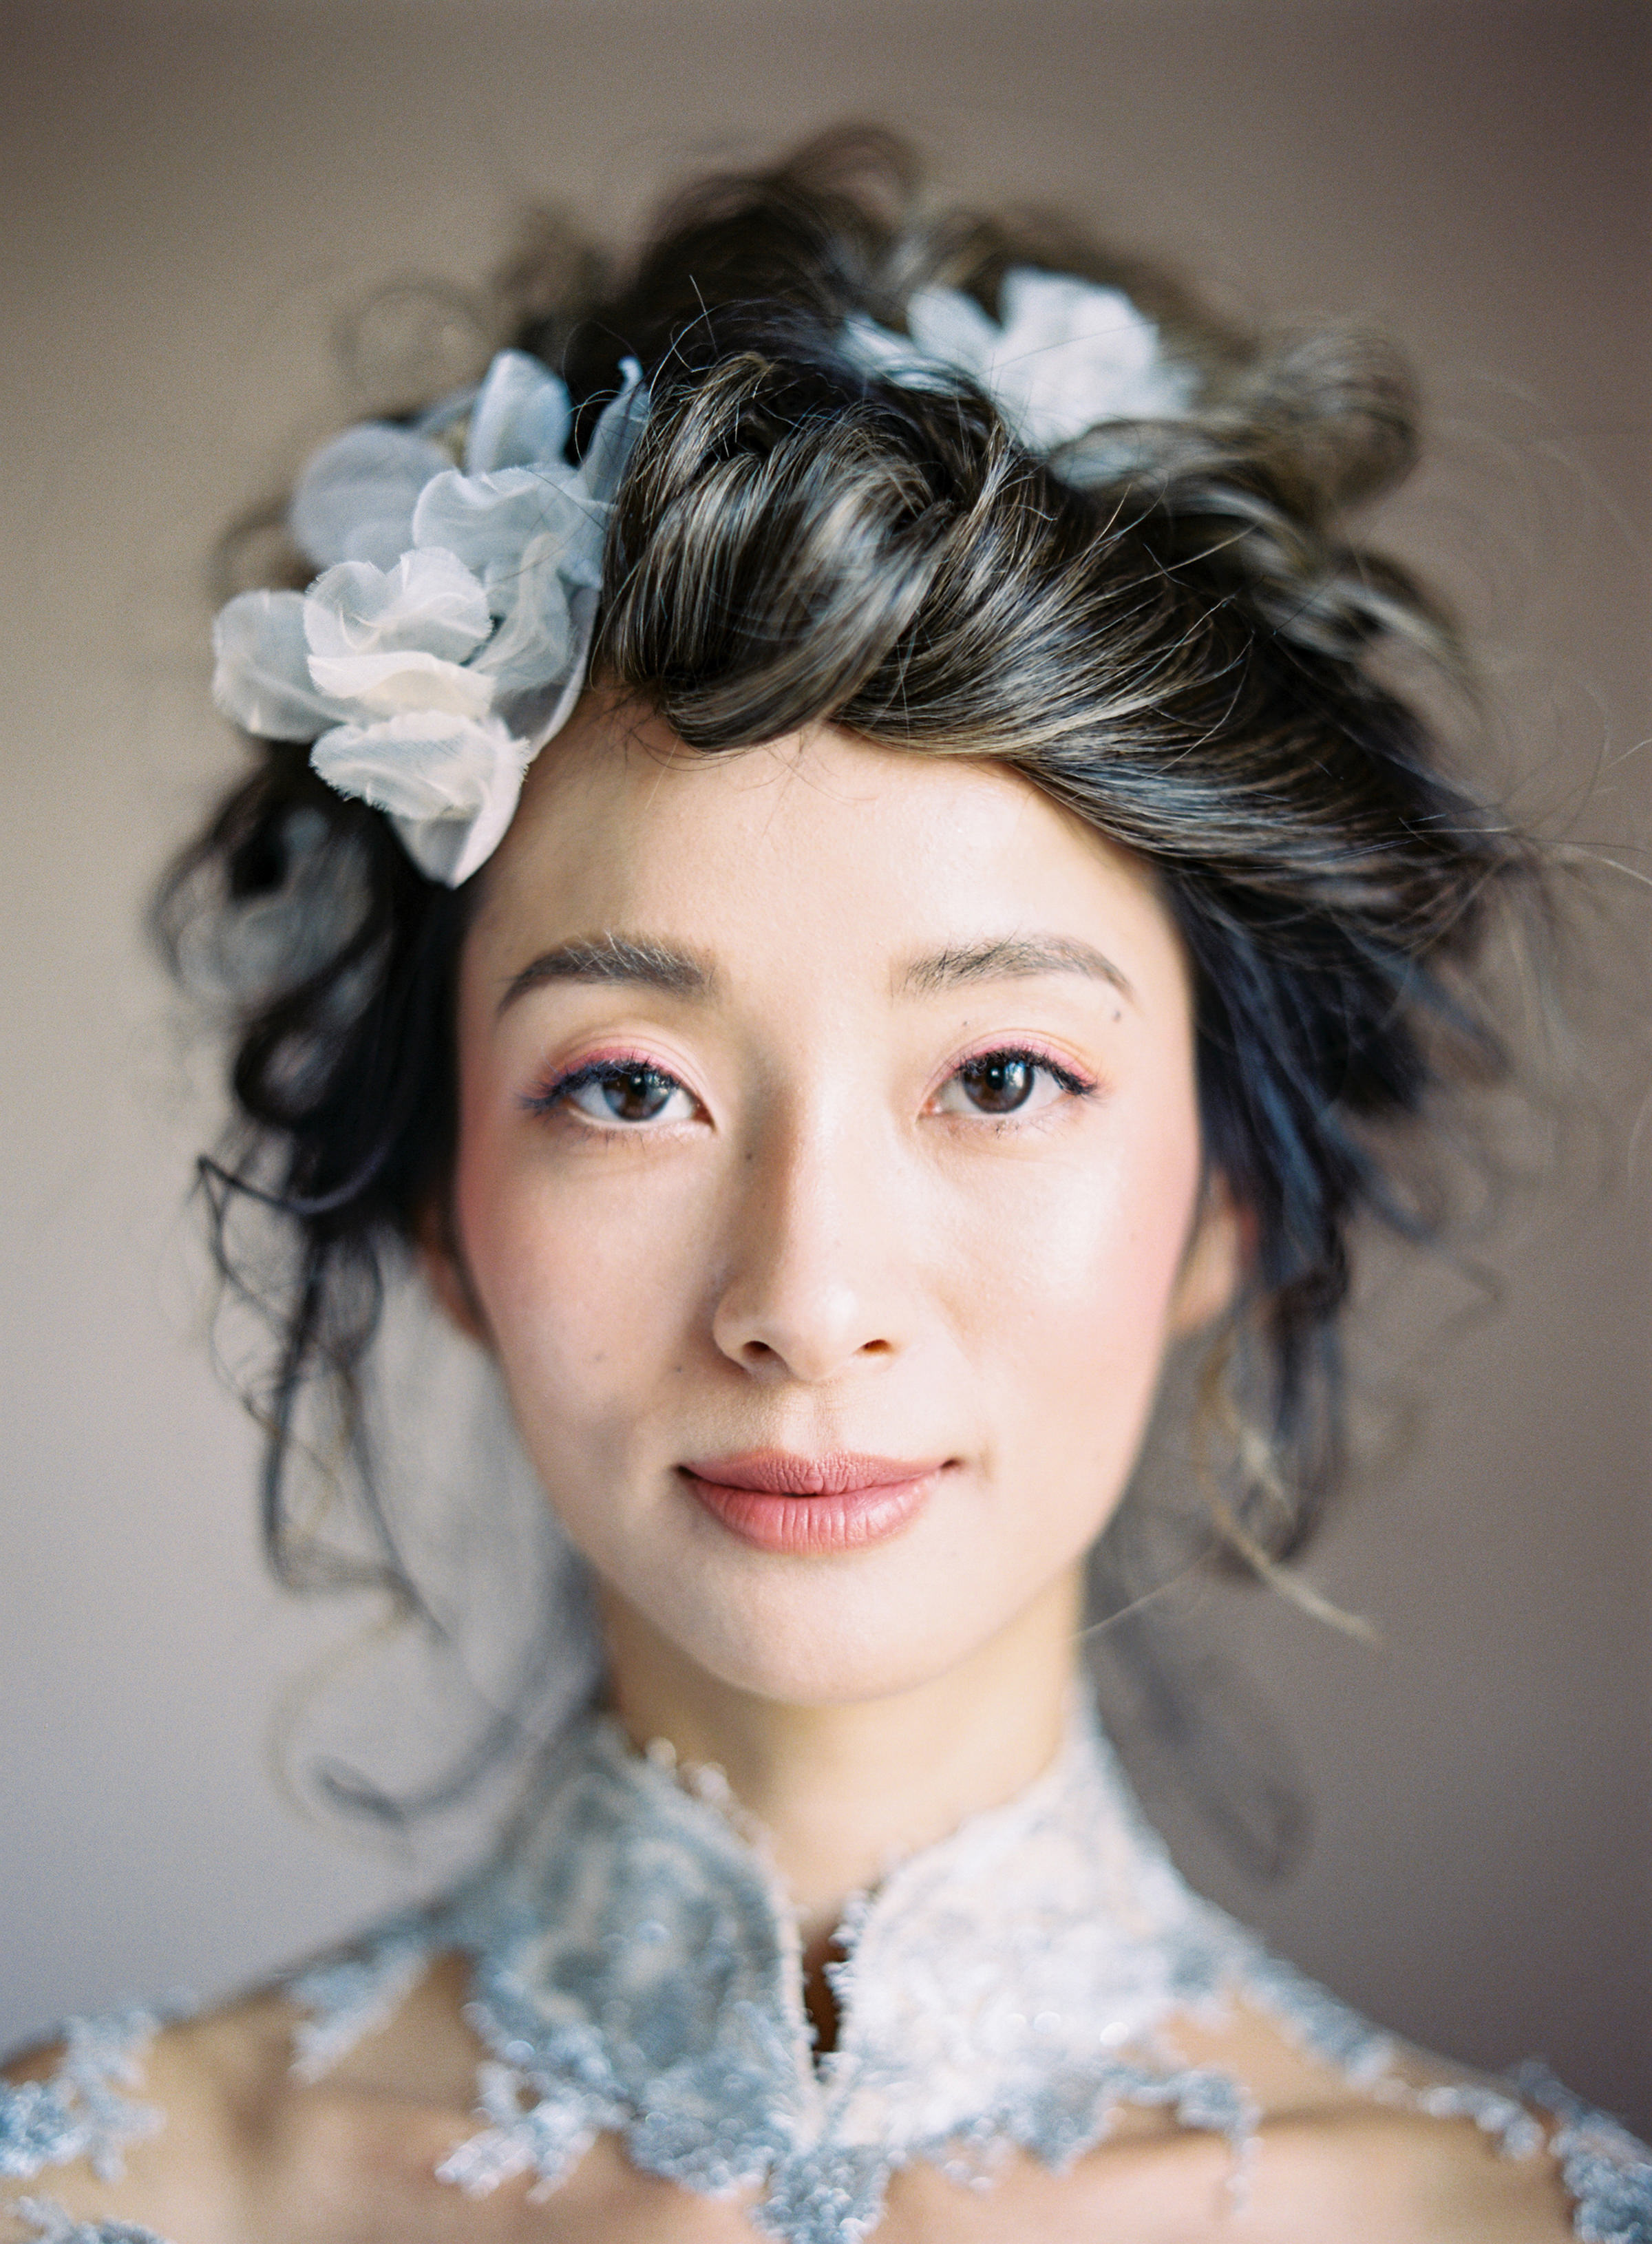 Bride with flowers in her hair headshot portrait - photo by Jen Huang